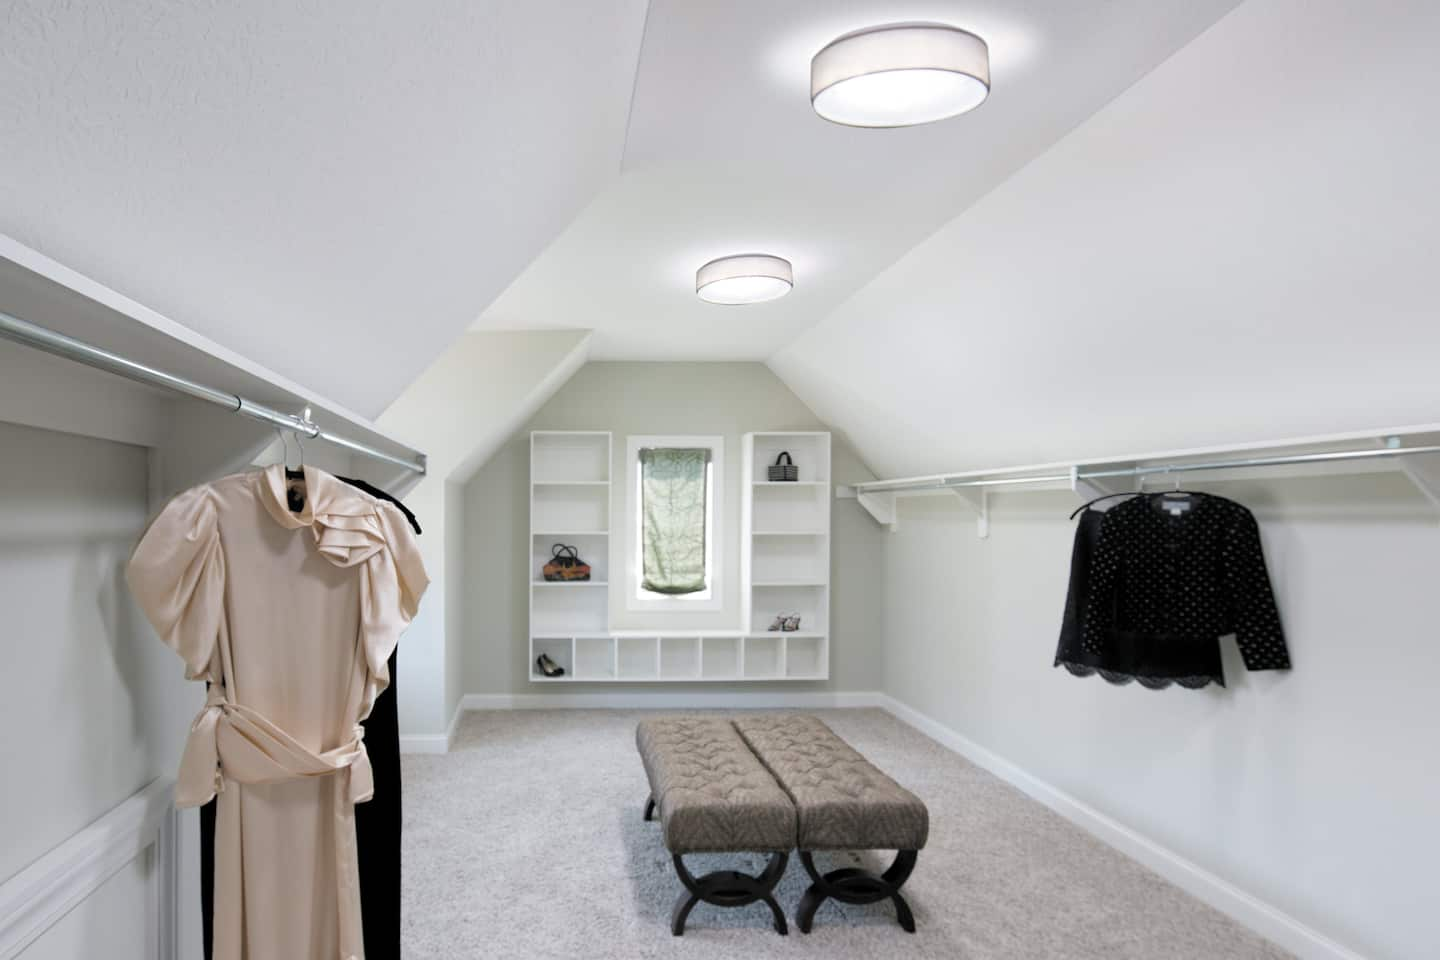 A walk-in closet with a solar tube skylight in the ceiling.